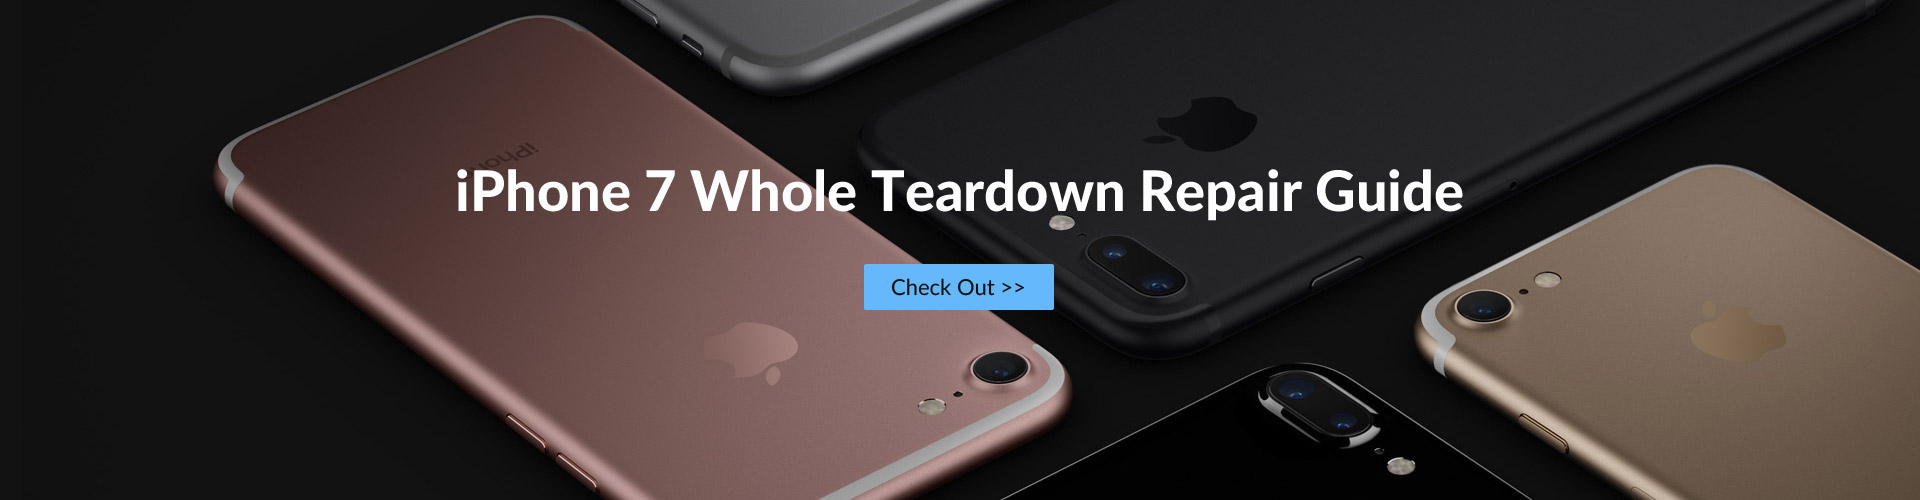 iPhone 7-teardown-repair-guide